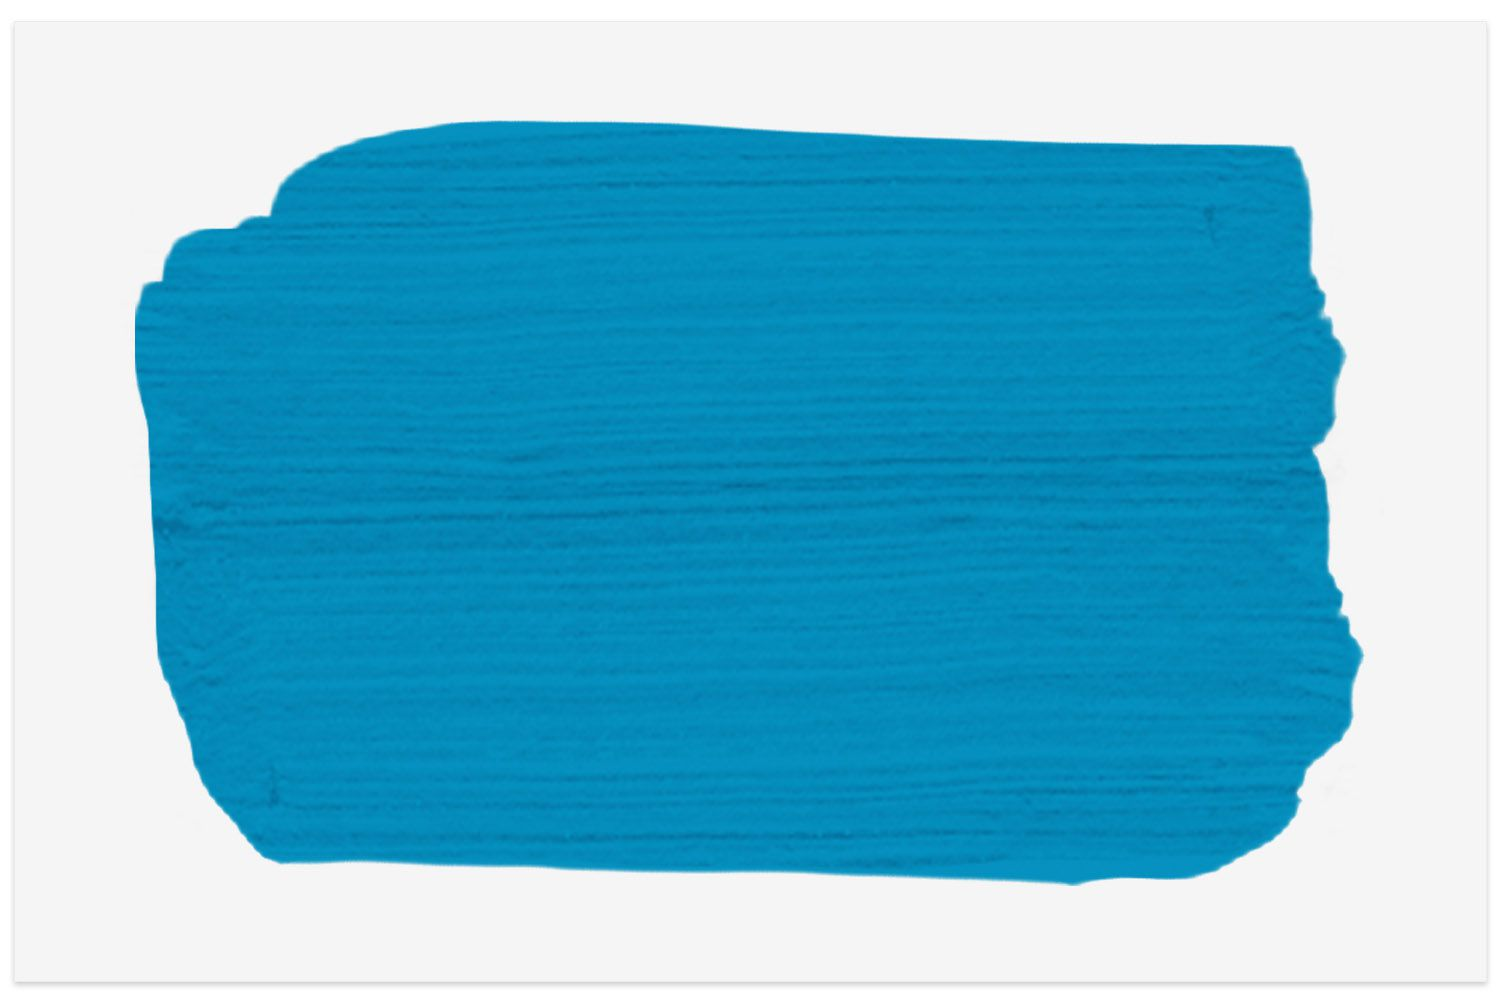 Bellflower paint swatch from PPG Paints